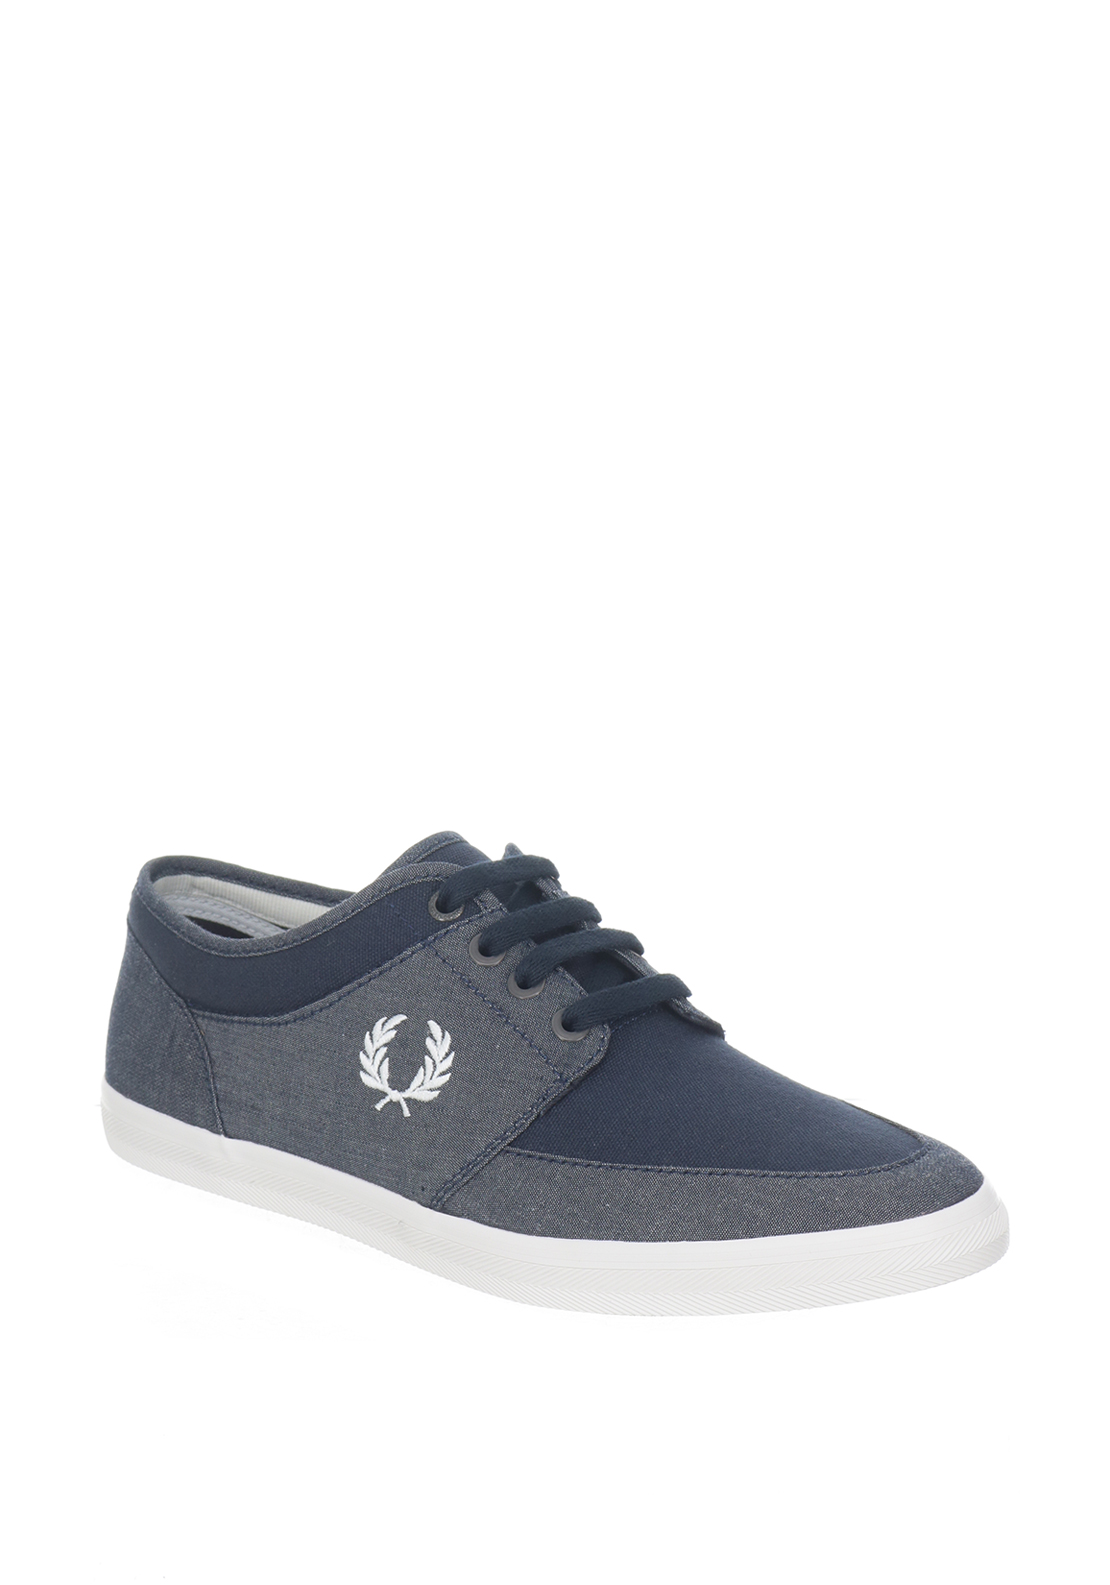 Fred Perry Stratford Canvas Trainers, Navy